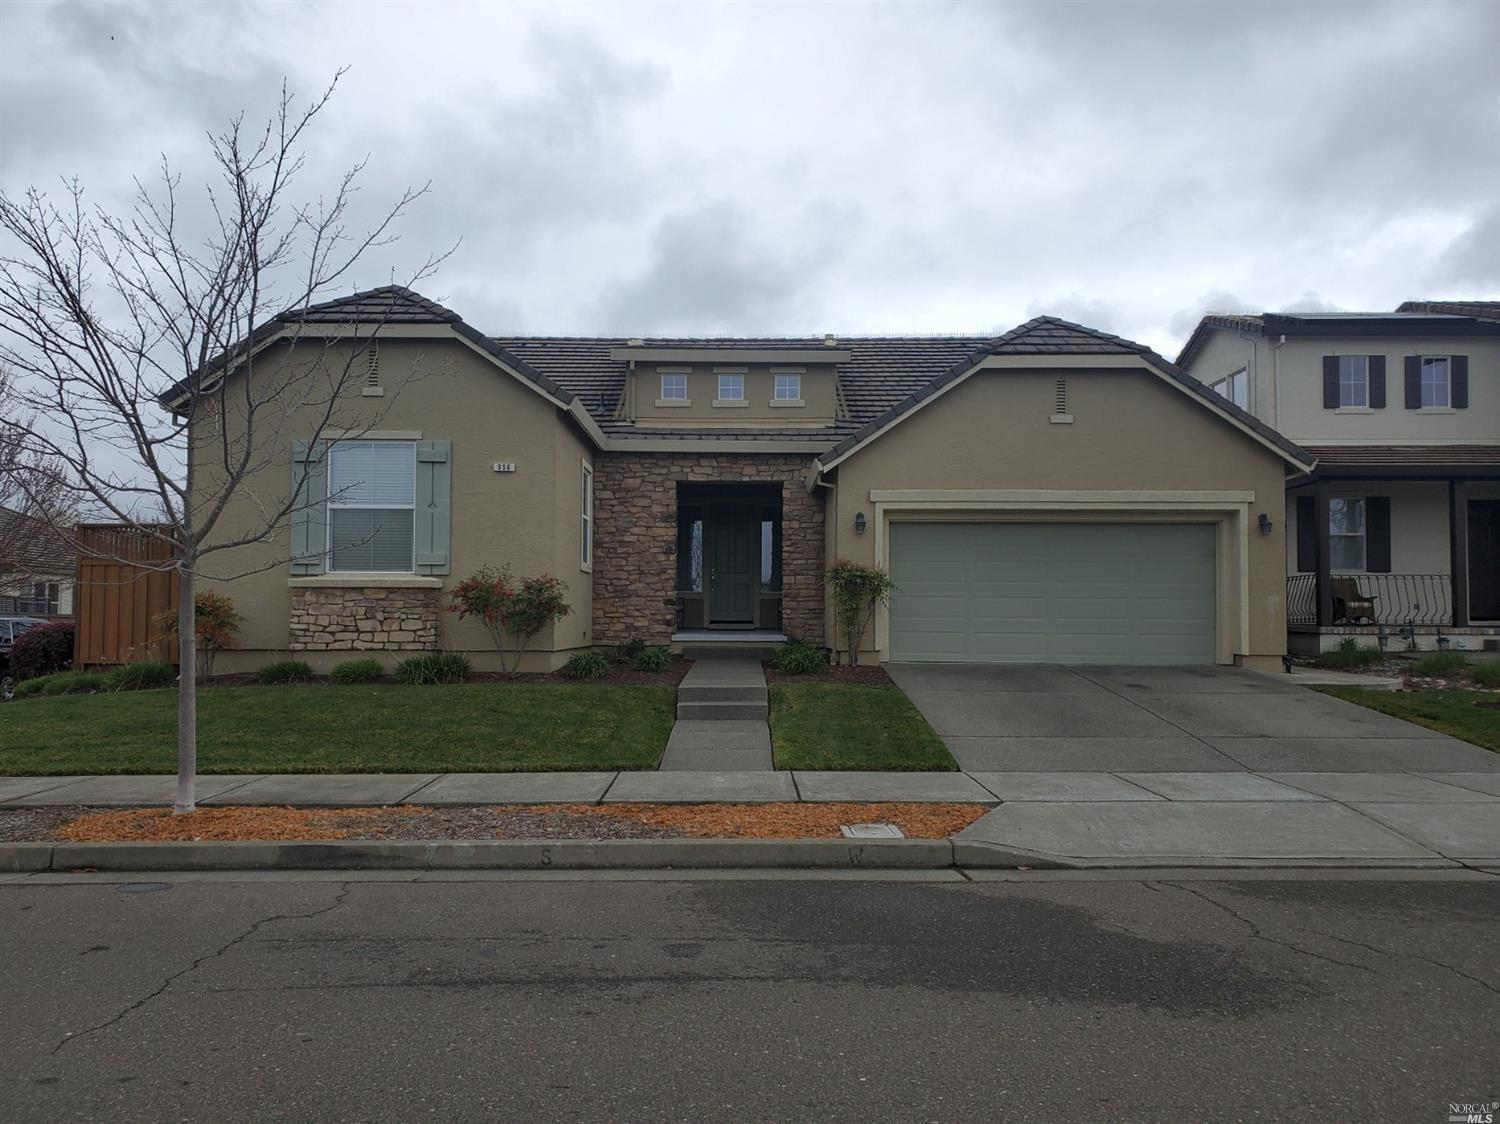 Beautiful home in Vintana!!!  Come see this home with an amazing curb appeal.  Large entry leads to open living room with electric fireplace and large windows overlooking the backyard.  Kitchen comes with beautiful recessed lighting, under cabinet lighting, kitchen nook, granite stone countertops, gas cooktop, wall oven, built-in microwave, dishwasher and wine fridge(refrigerator is not included).  Large formal dining room.  Master bedroom comes with a private and spacious bathroom with separate shower, tub area and walk-in closet.  Two large bedrooms and an office!  Backyard features a concrete patio, beautiful awning and landscaping all around.  Two car garage.  Landscaping included.  12-month lease agreement.   Sorry, no pets.